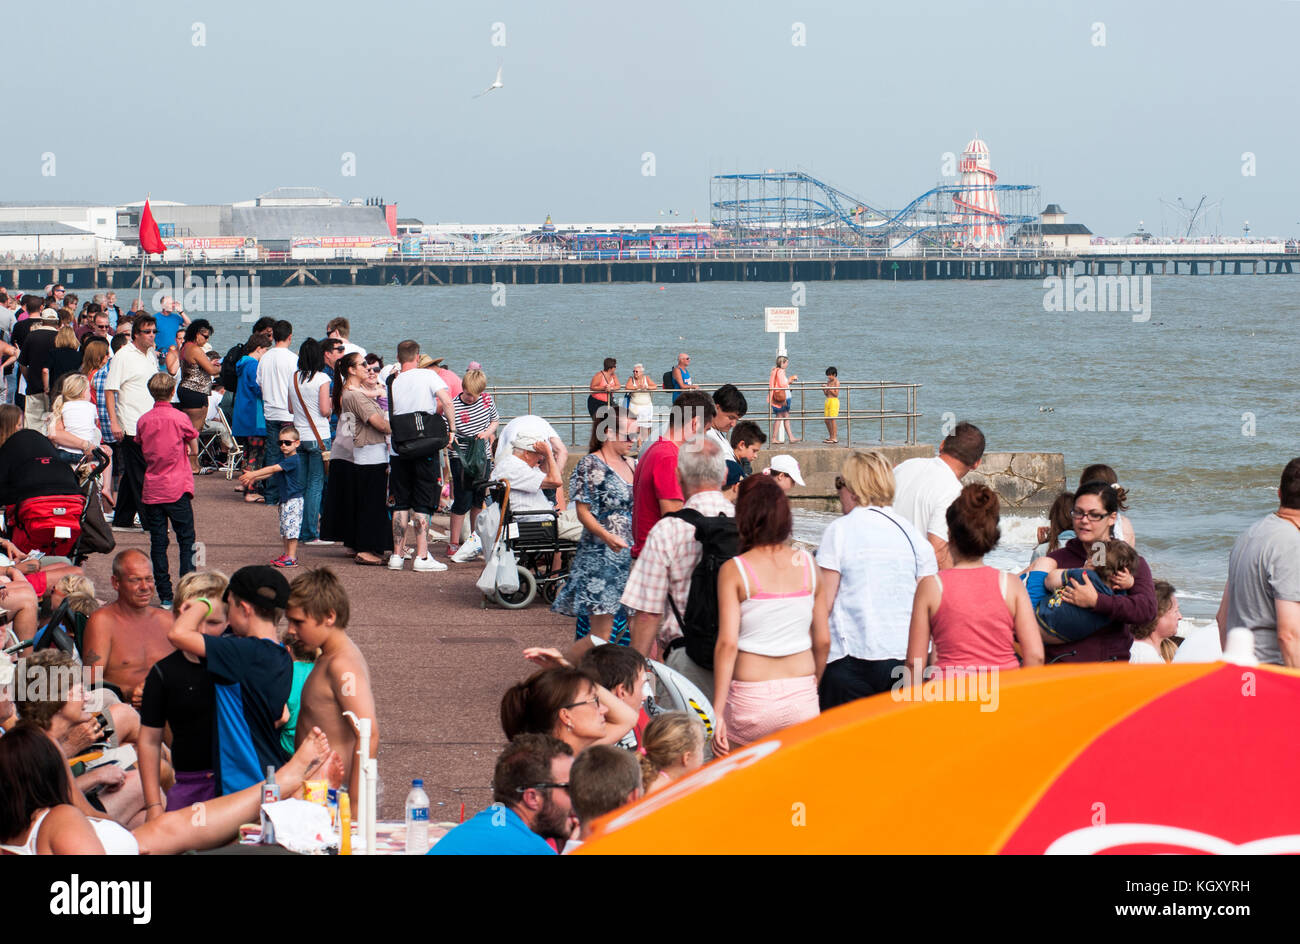 A crowded seafront in summer at Clacton-on-sea, Essex. - Stock Image